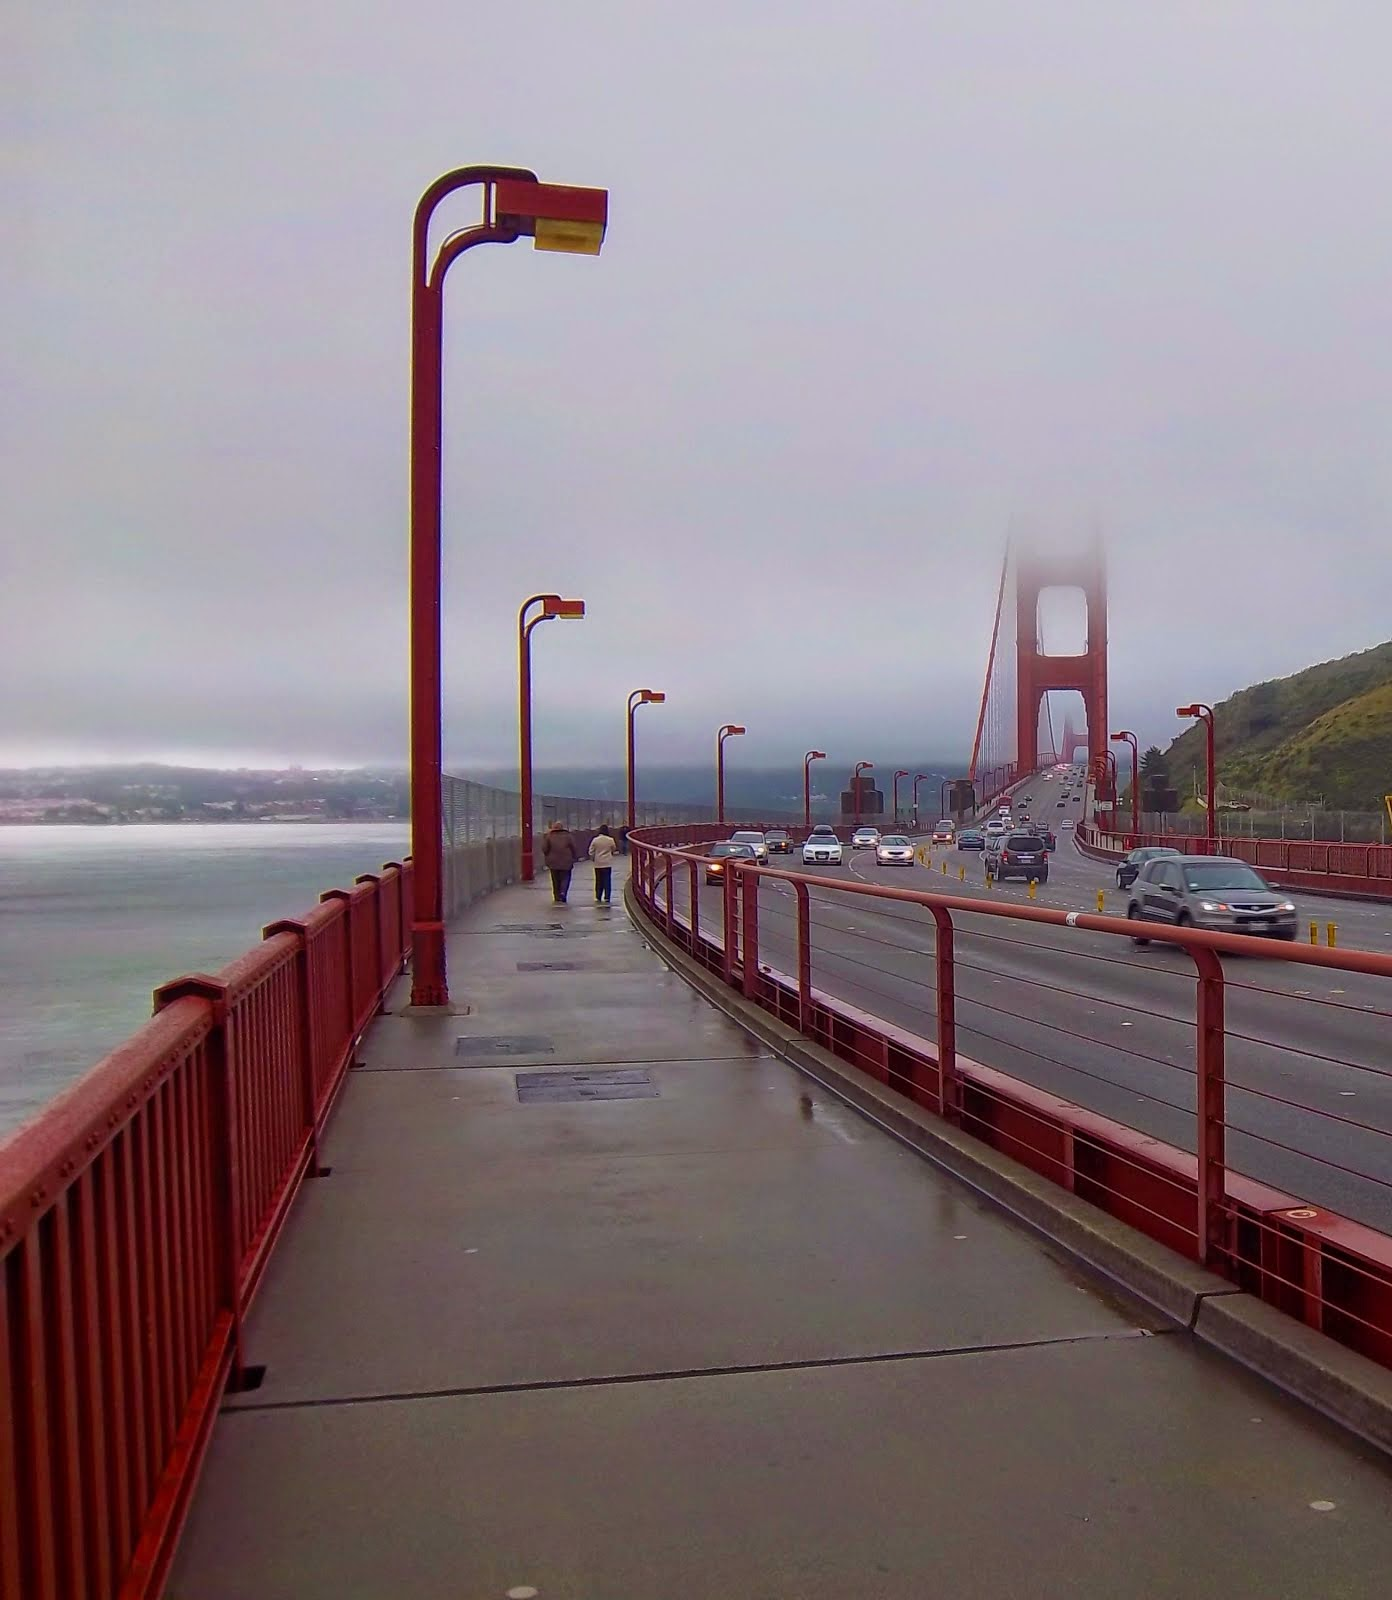 Running the Golden Gate Bridge in San Francisco